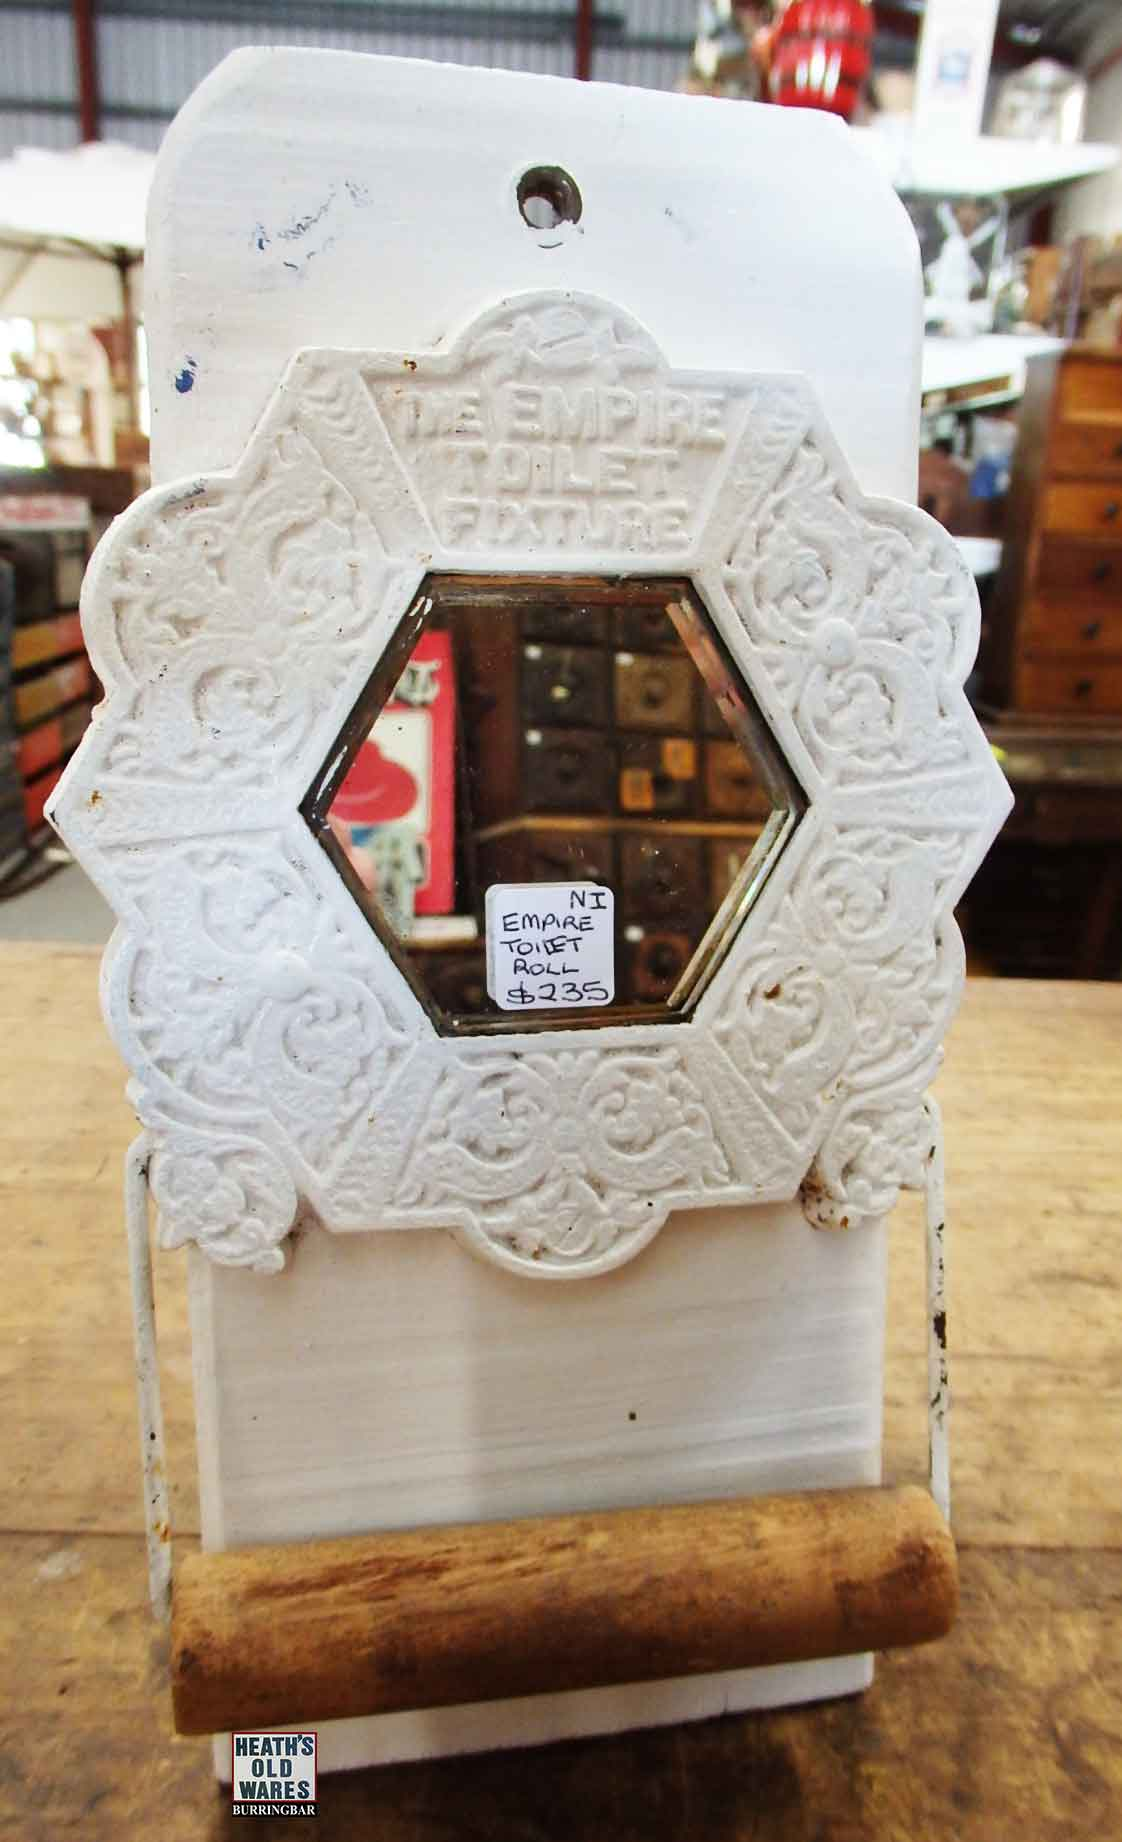 Empire cast toilet roll holder $235 for sale at Heaths Old Wares, Collectables, Antiques & Industrial Antiques, 19-21 Broadway, Burringbar NSW 2483 Ph 0266771181 open 7 days